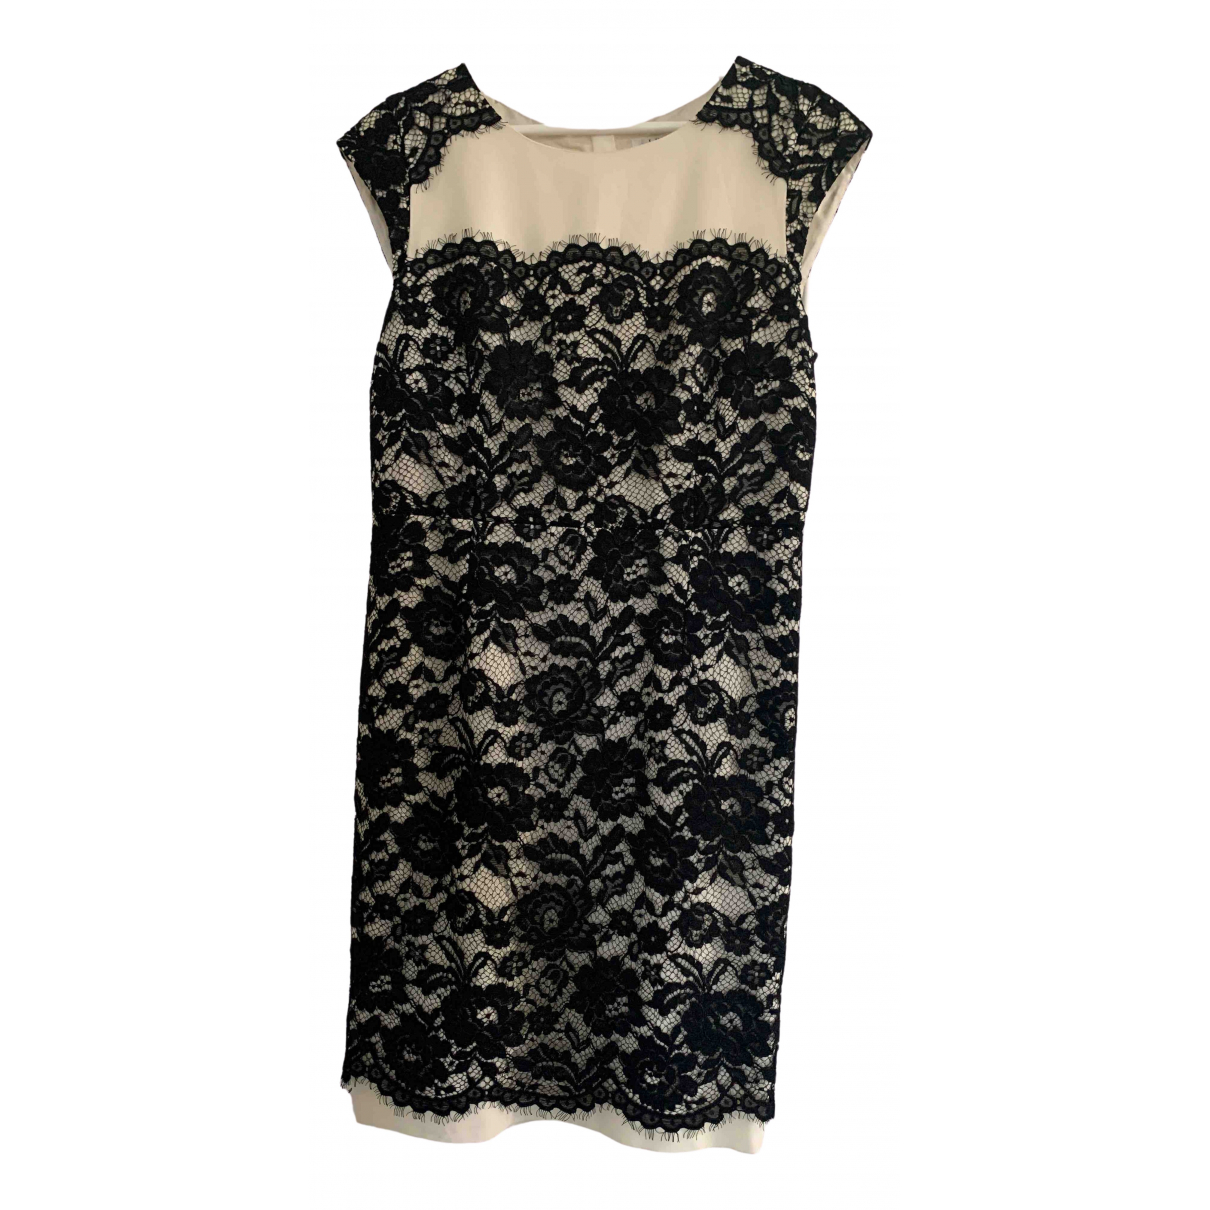 Lk Bennett \N Black Cotton dress for Women 14 UK